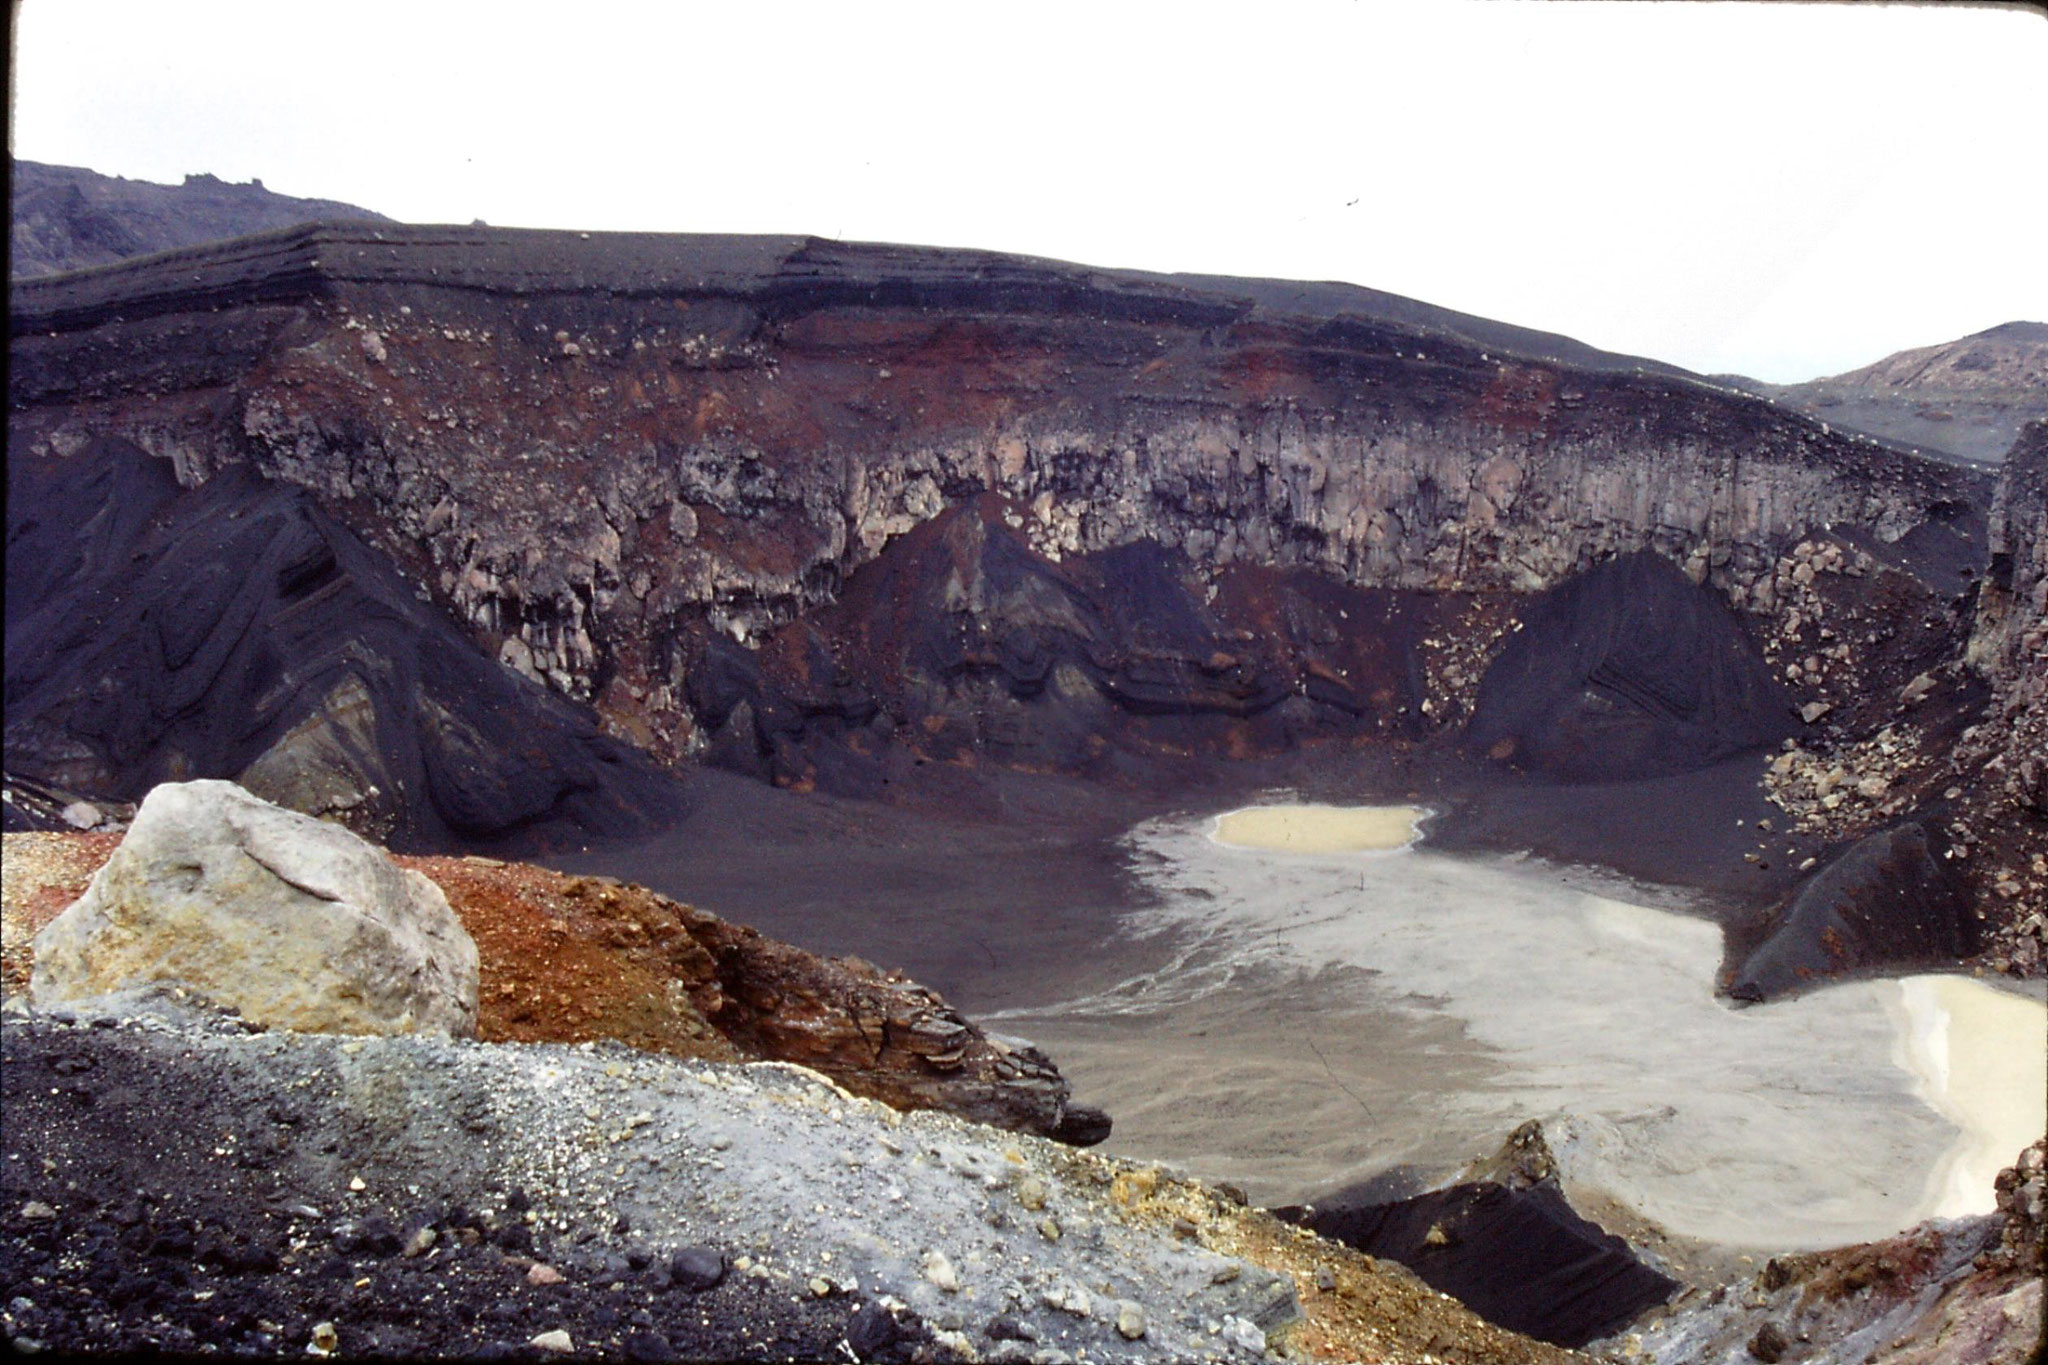 22/1/1989: 2: Aso San old crater